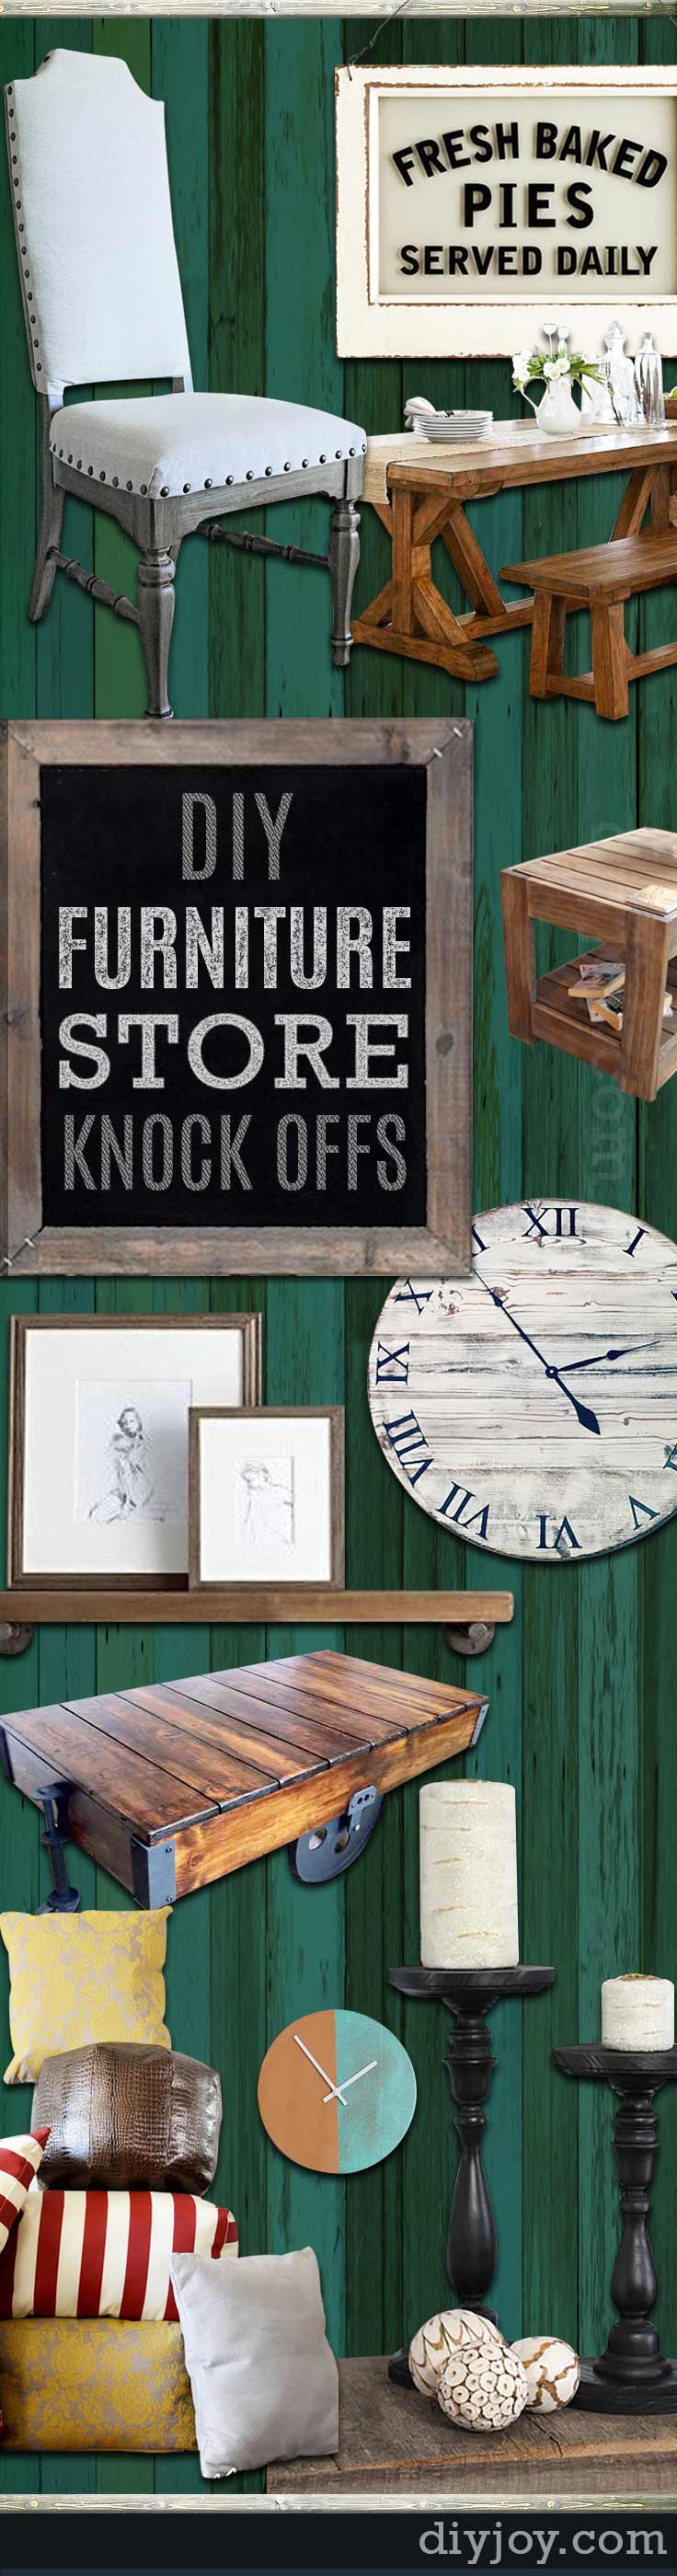 52 incredible diy furniture store knock offs